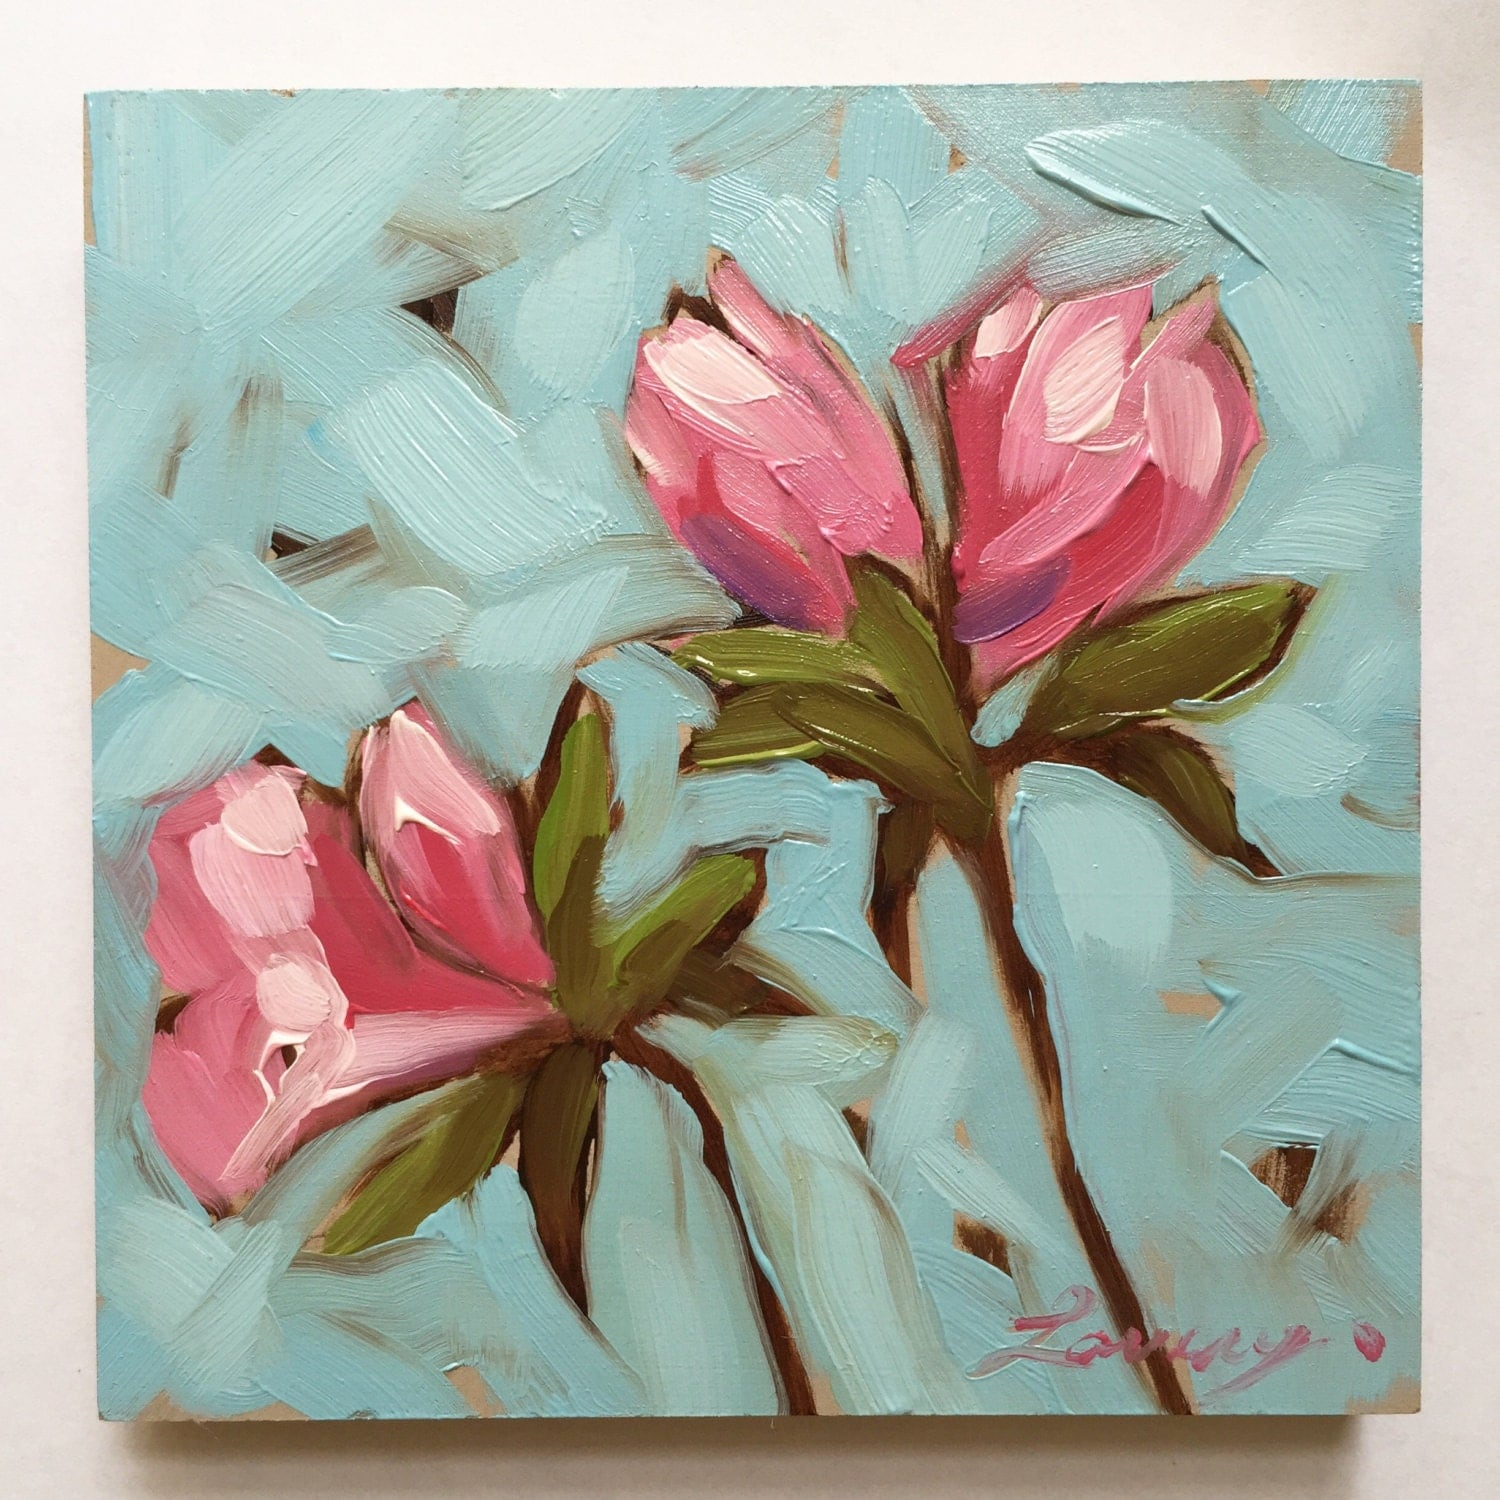 Watercolor Flower Painting: Flower Painting Pink Azalea Flowers 4x4 Inch Impressionistic